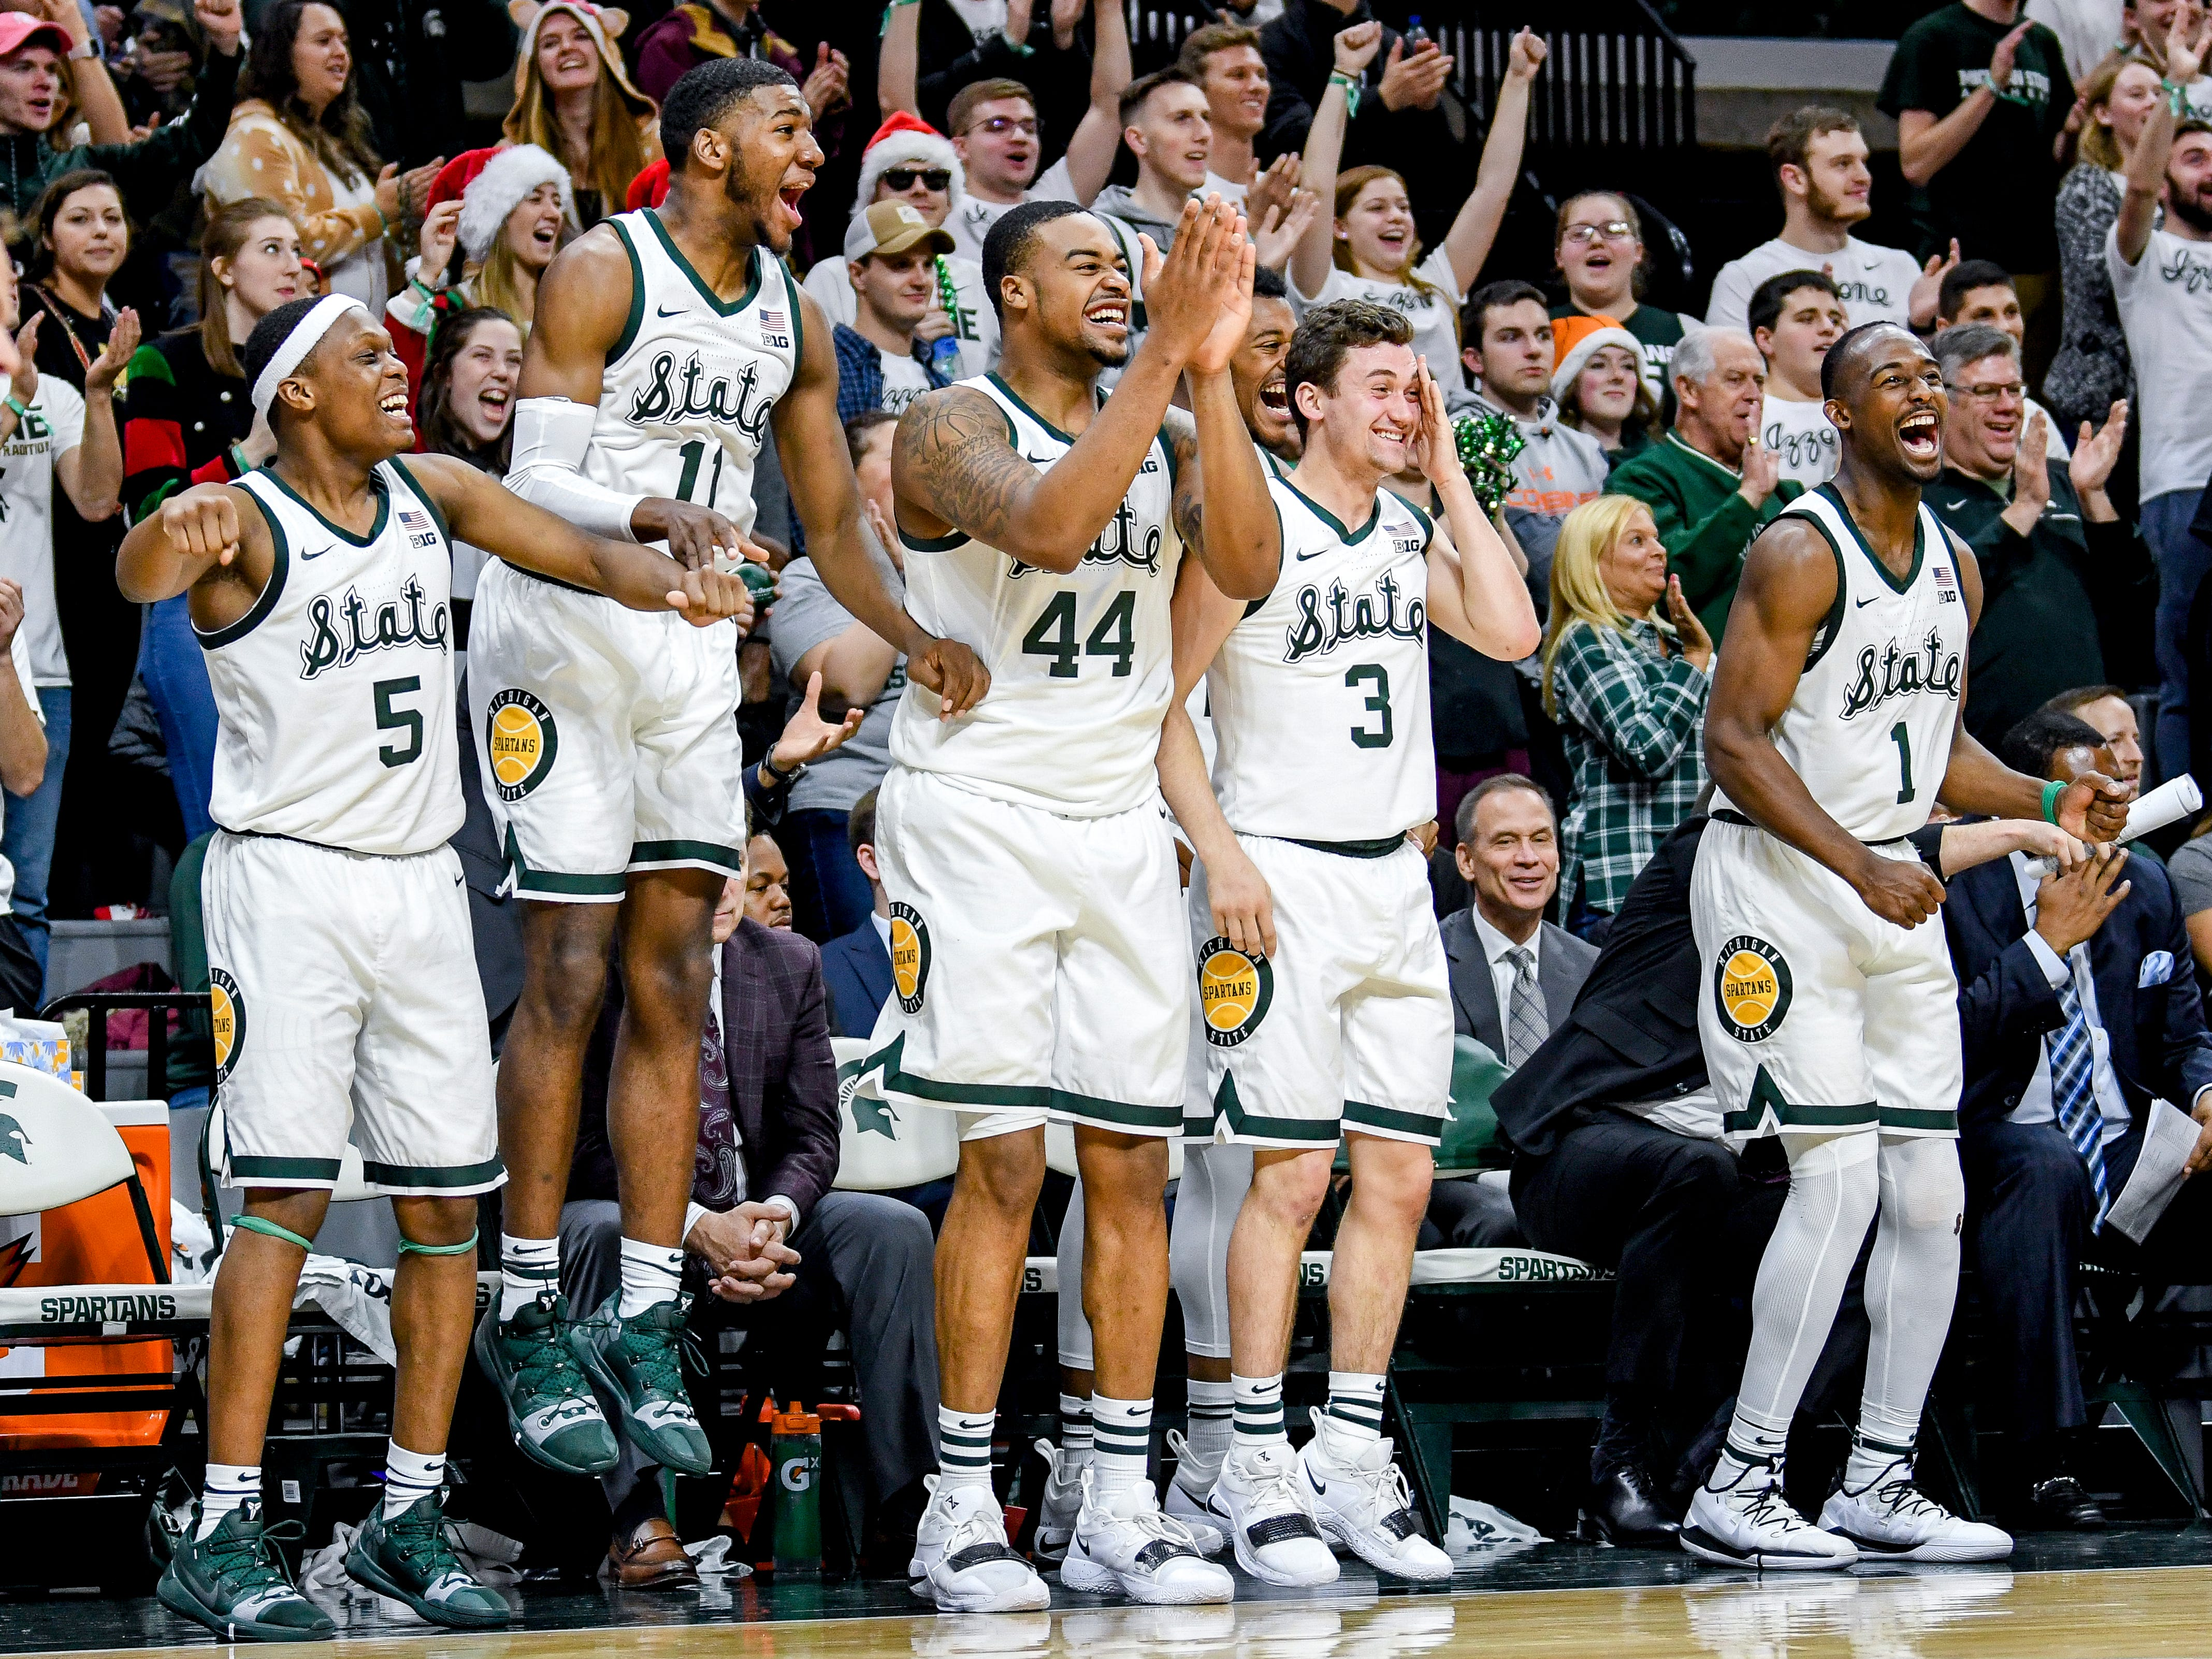 The Michigan State bench celebrates after a score late during the second half on Monday, Dec. 3, 2018, at the Breslin Center in East Lansing. Michigan State beat Iowa 90-68.